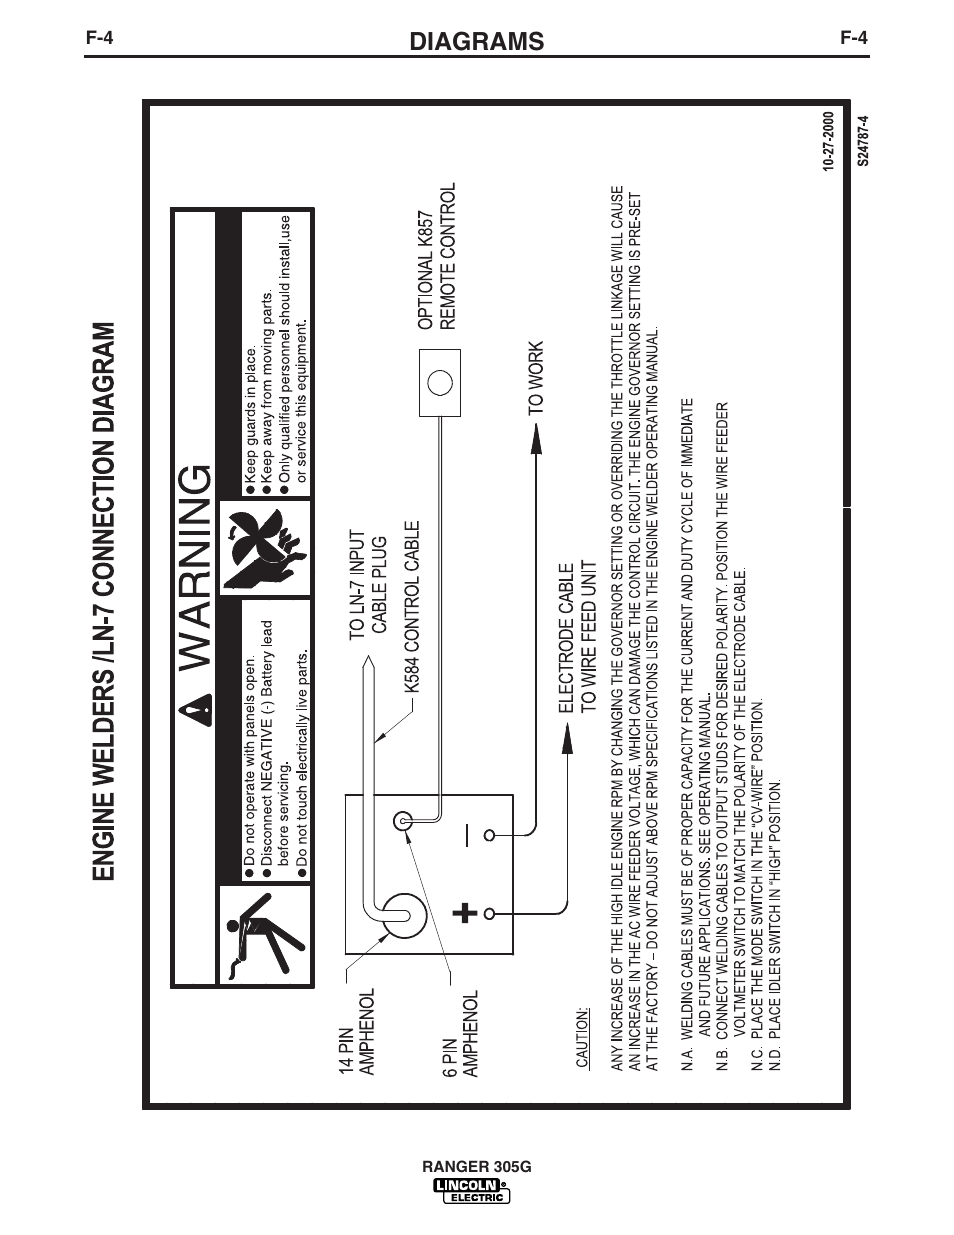 Lincoln 305g Wiring Diagram Libraries Welder Engine Diagrams Electric Ranger User Manual Page 38 49